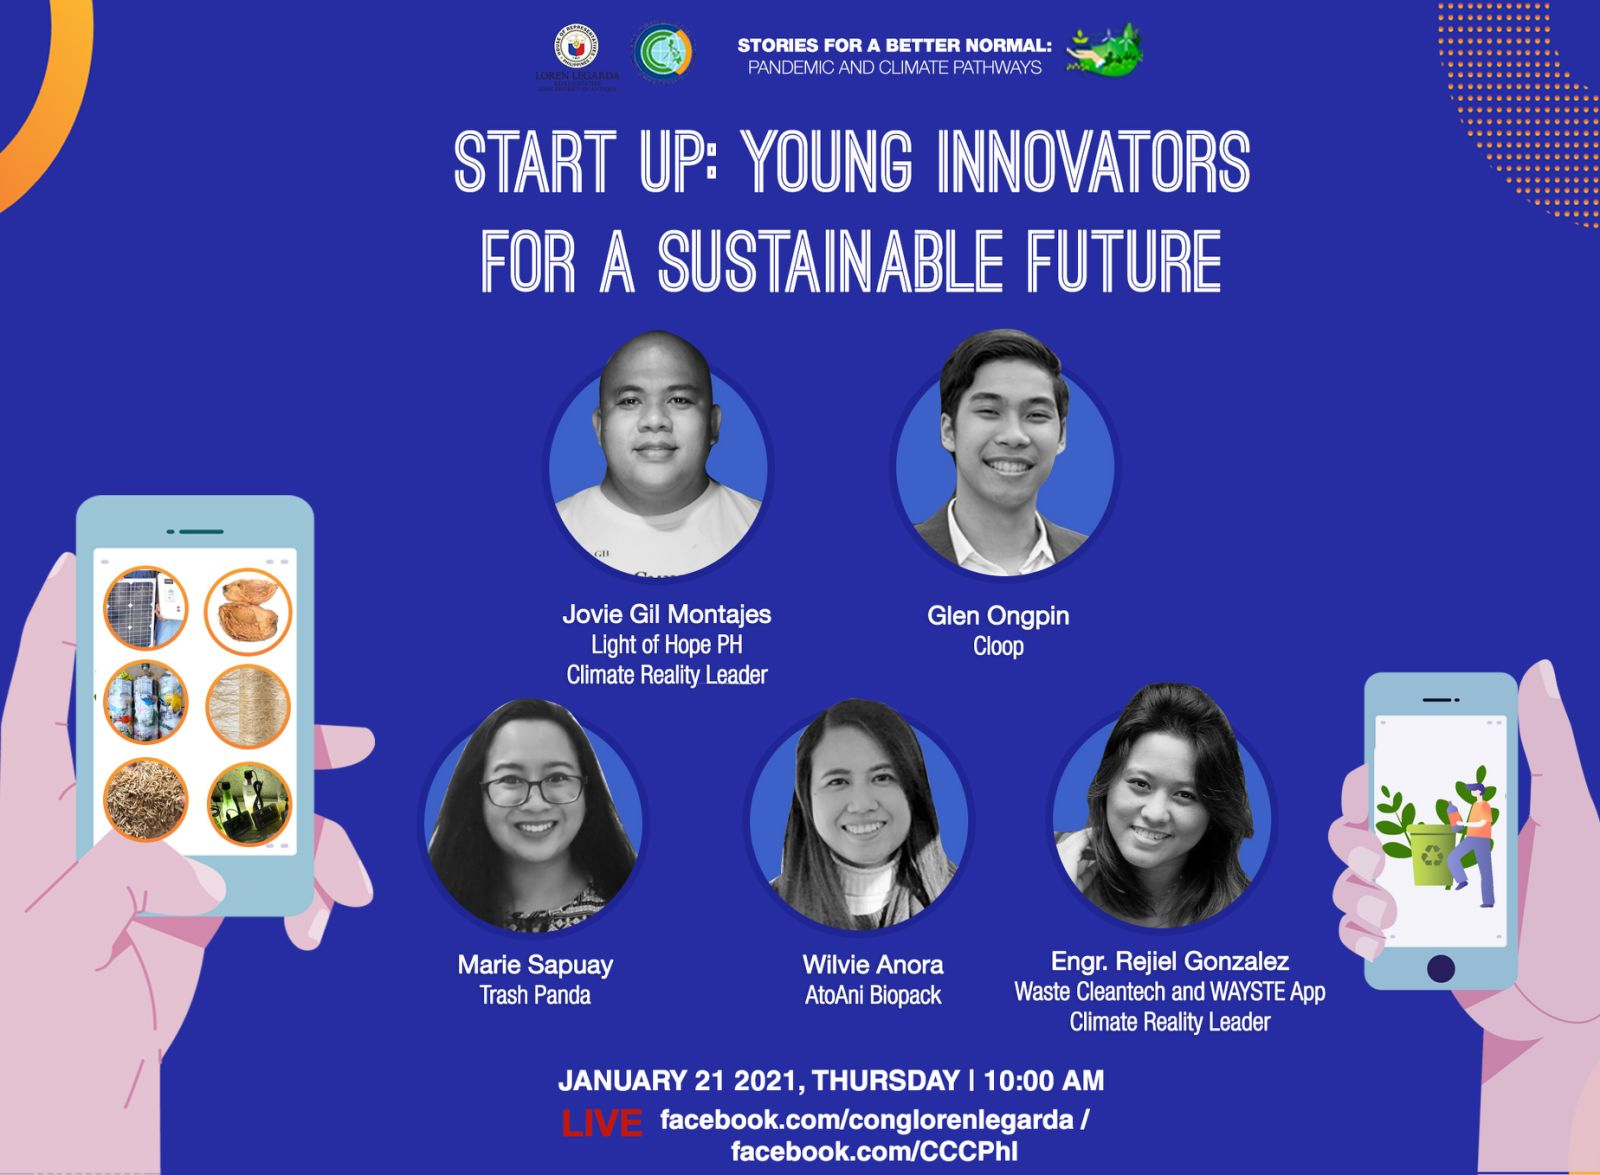 Young Innovators for a Sustainable Future